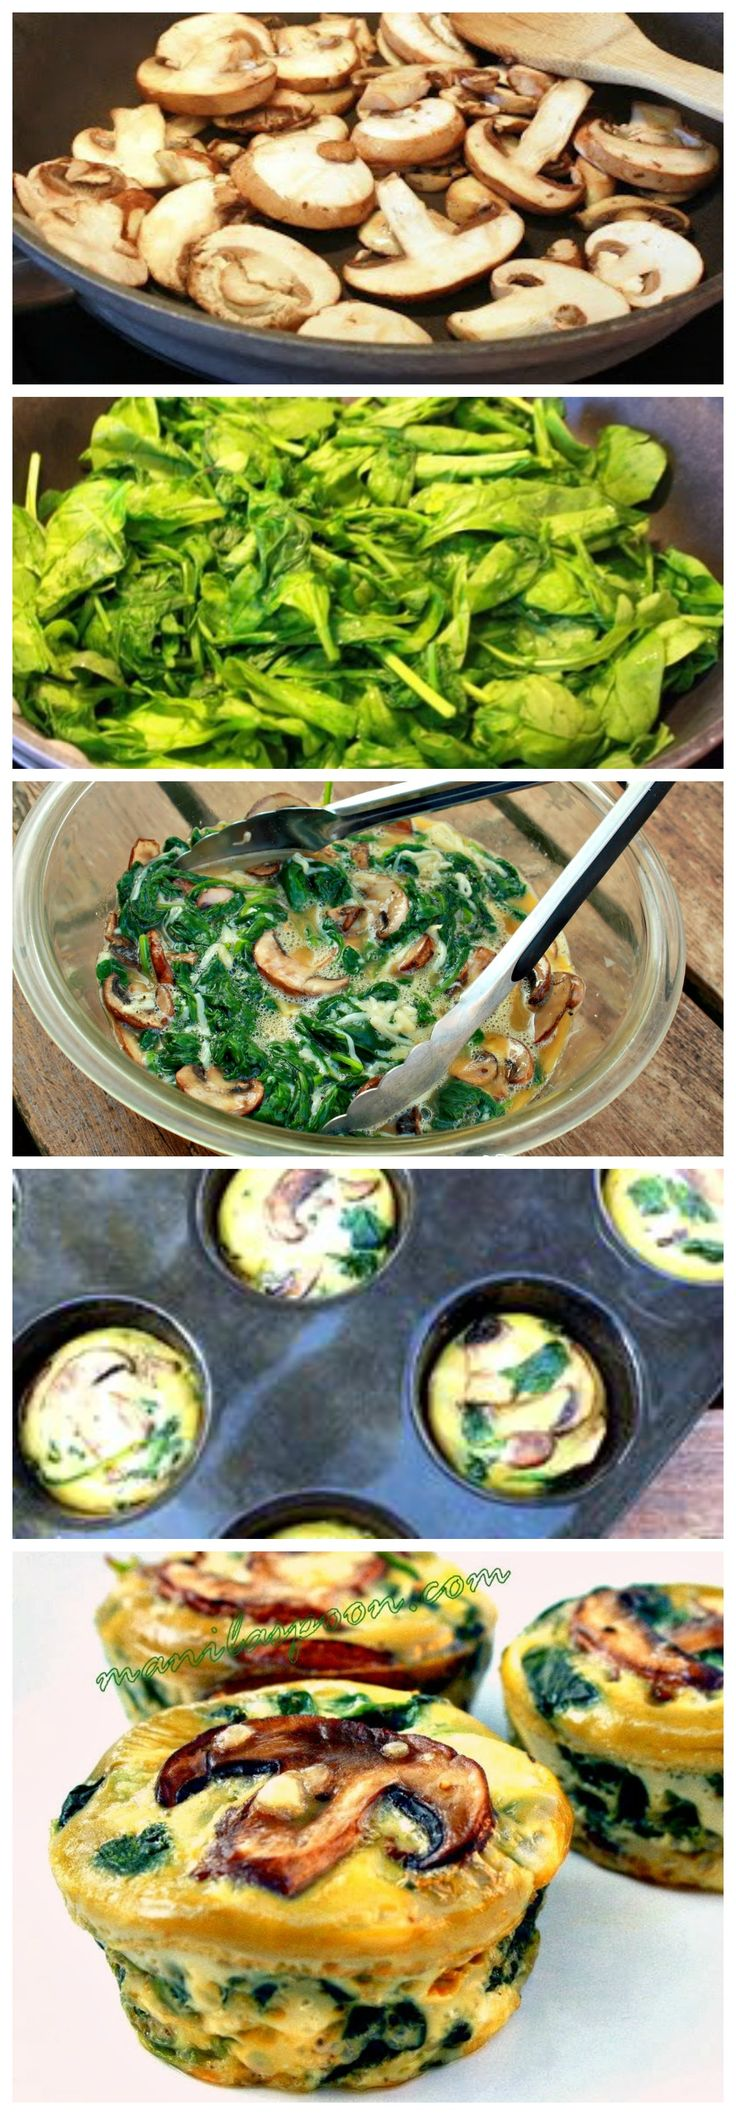 Perfect for a quick, yummy and healthy breakfast on the go - SPINACH QUICHE CUPS - Low-carb and gluten-free! Perfect healthy appetizer for Game Day!